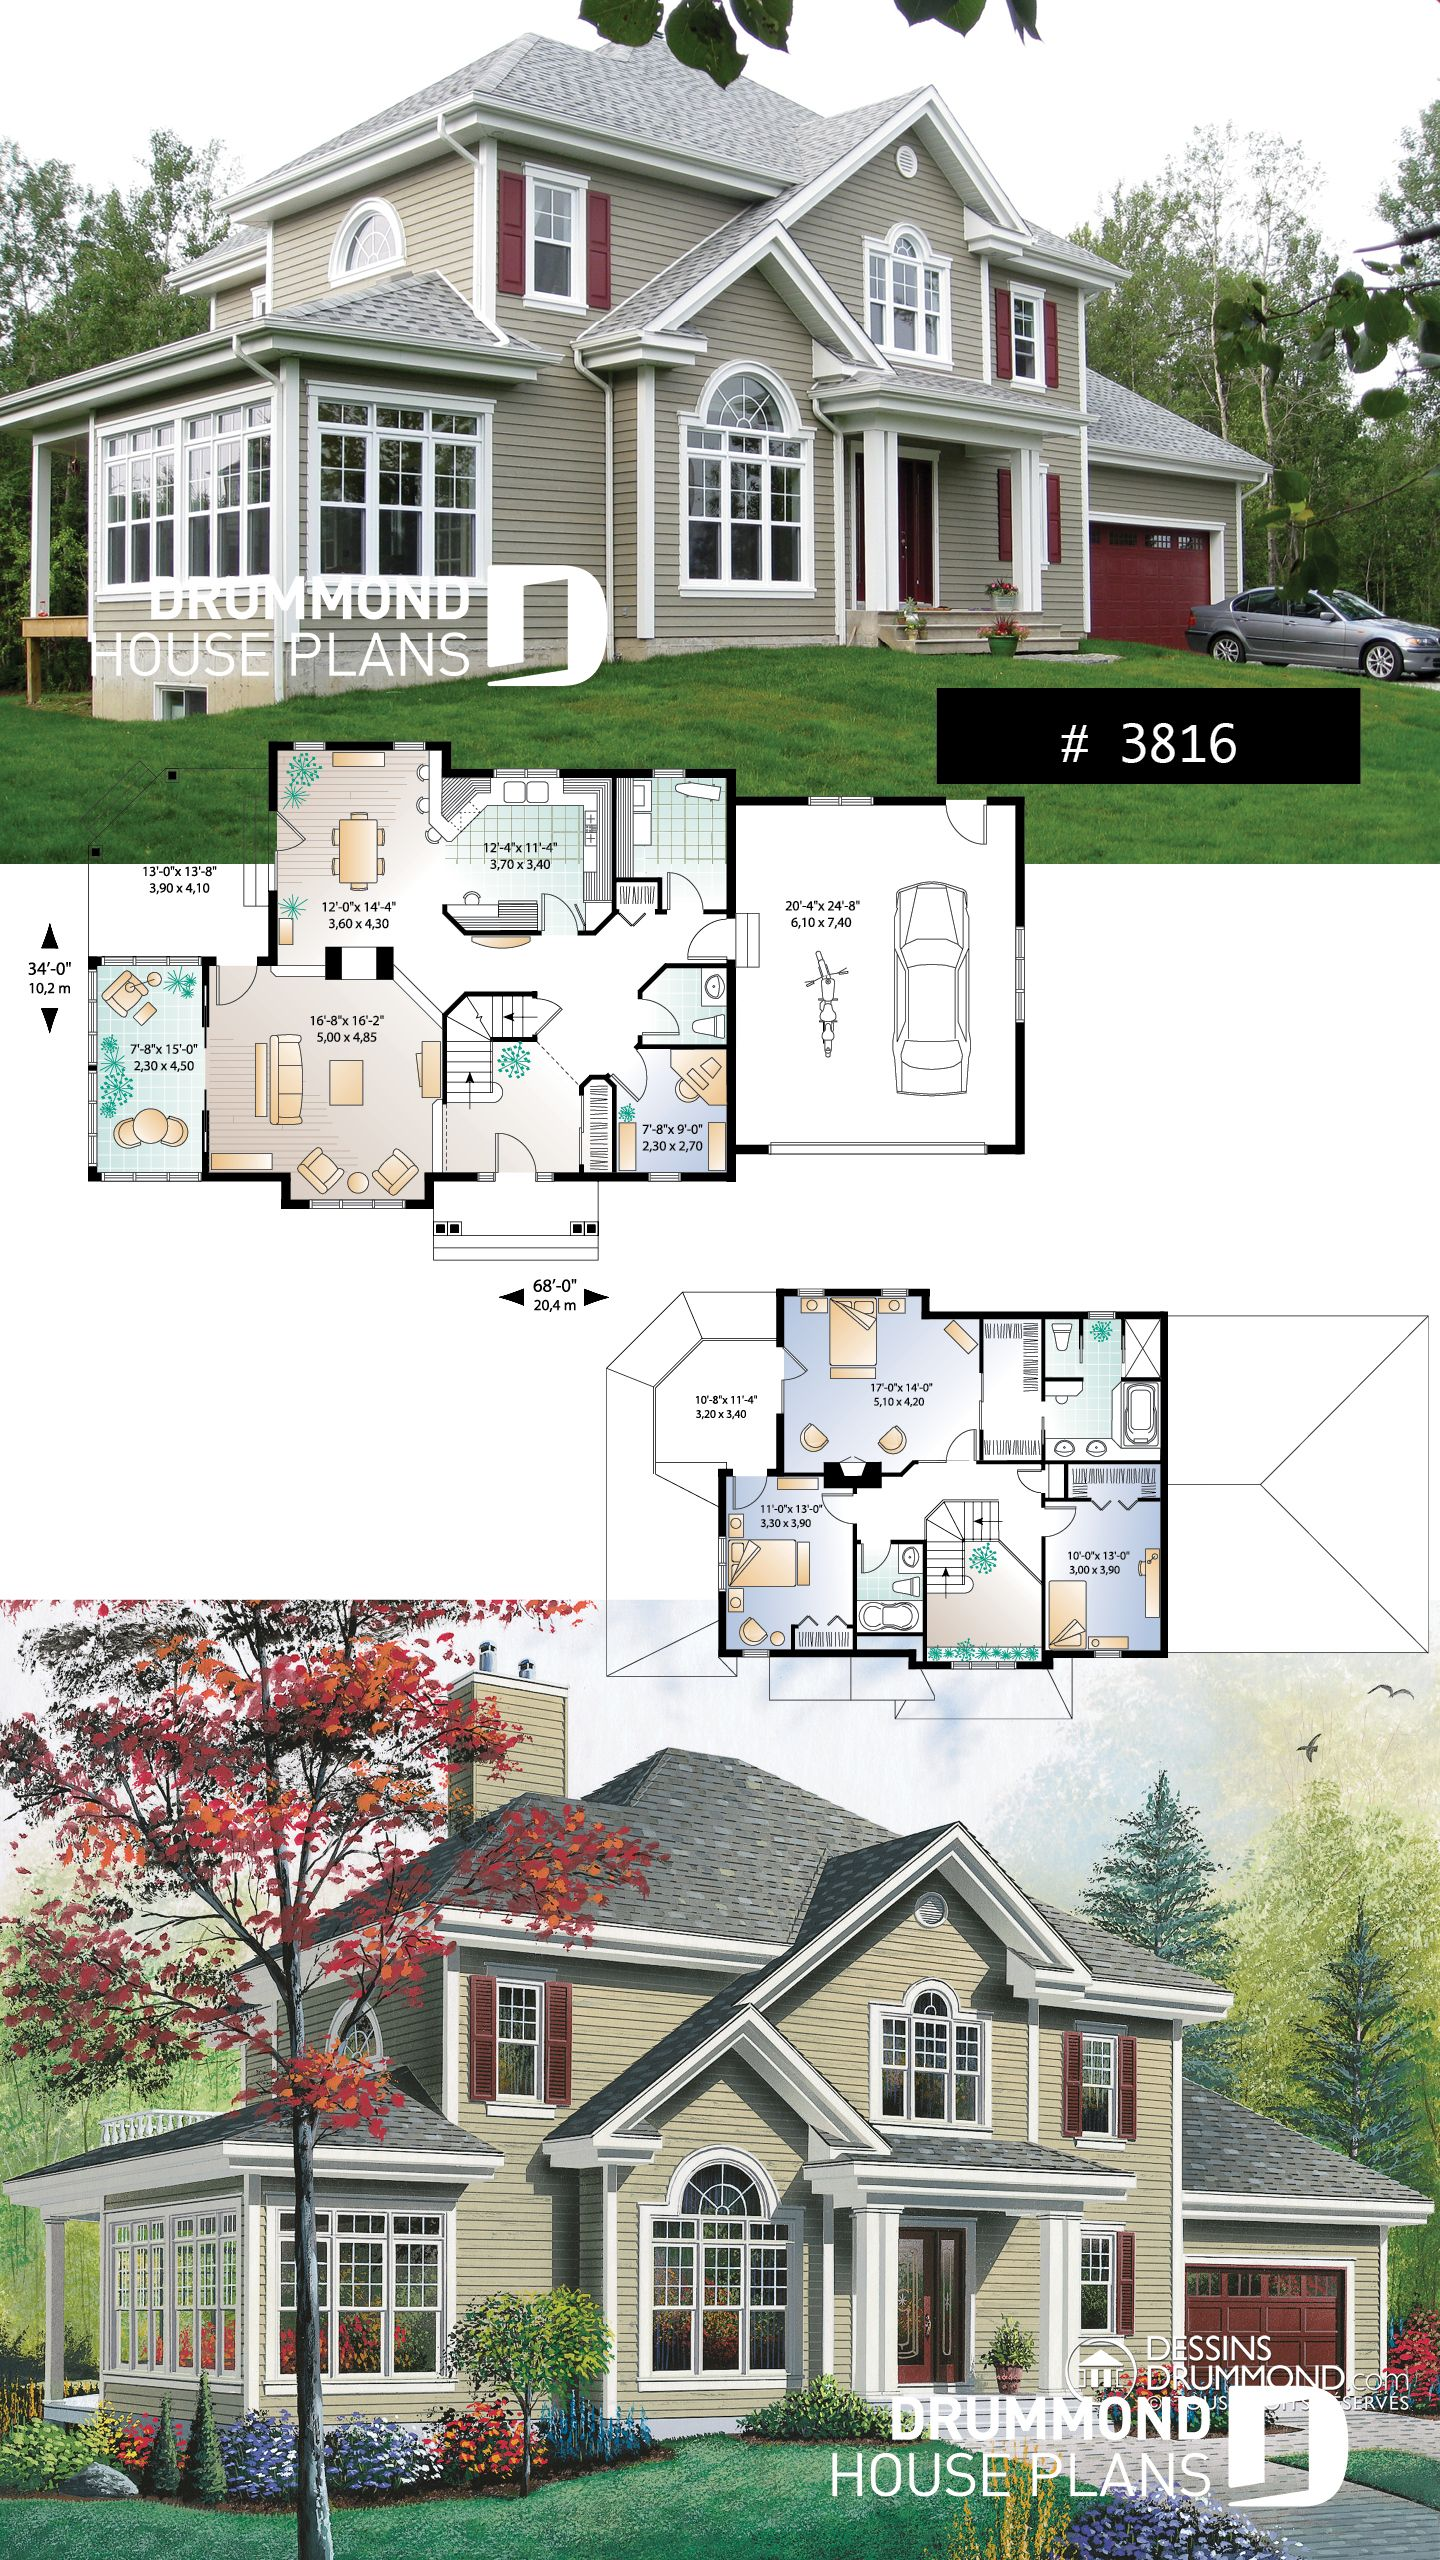 4 bedroom traditional home plan with garage